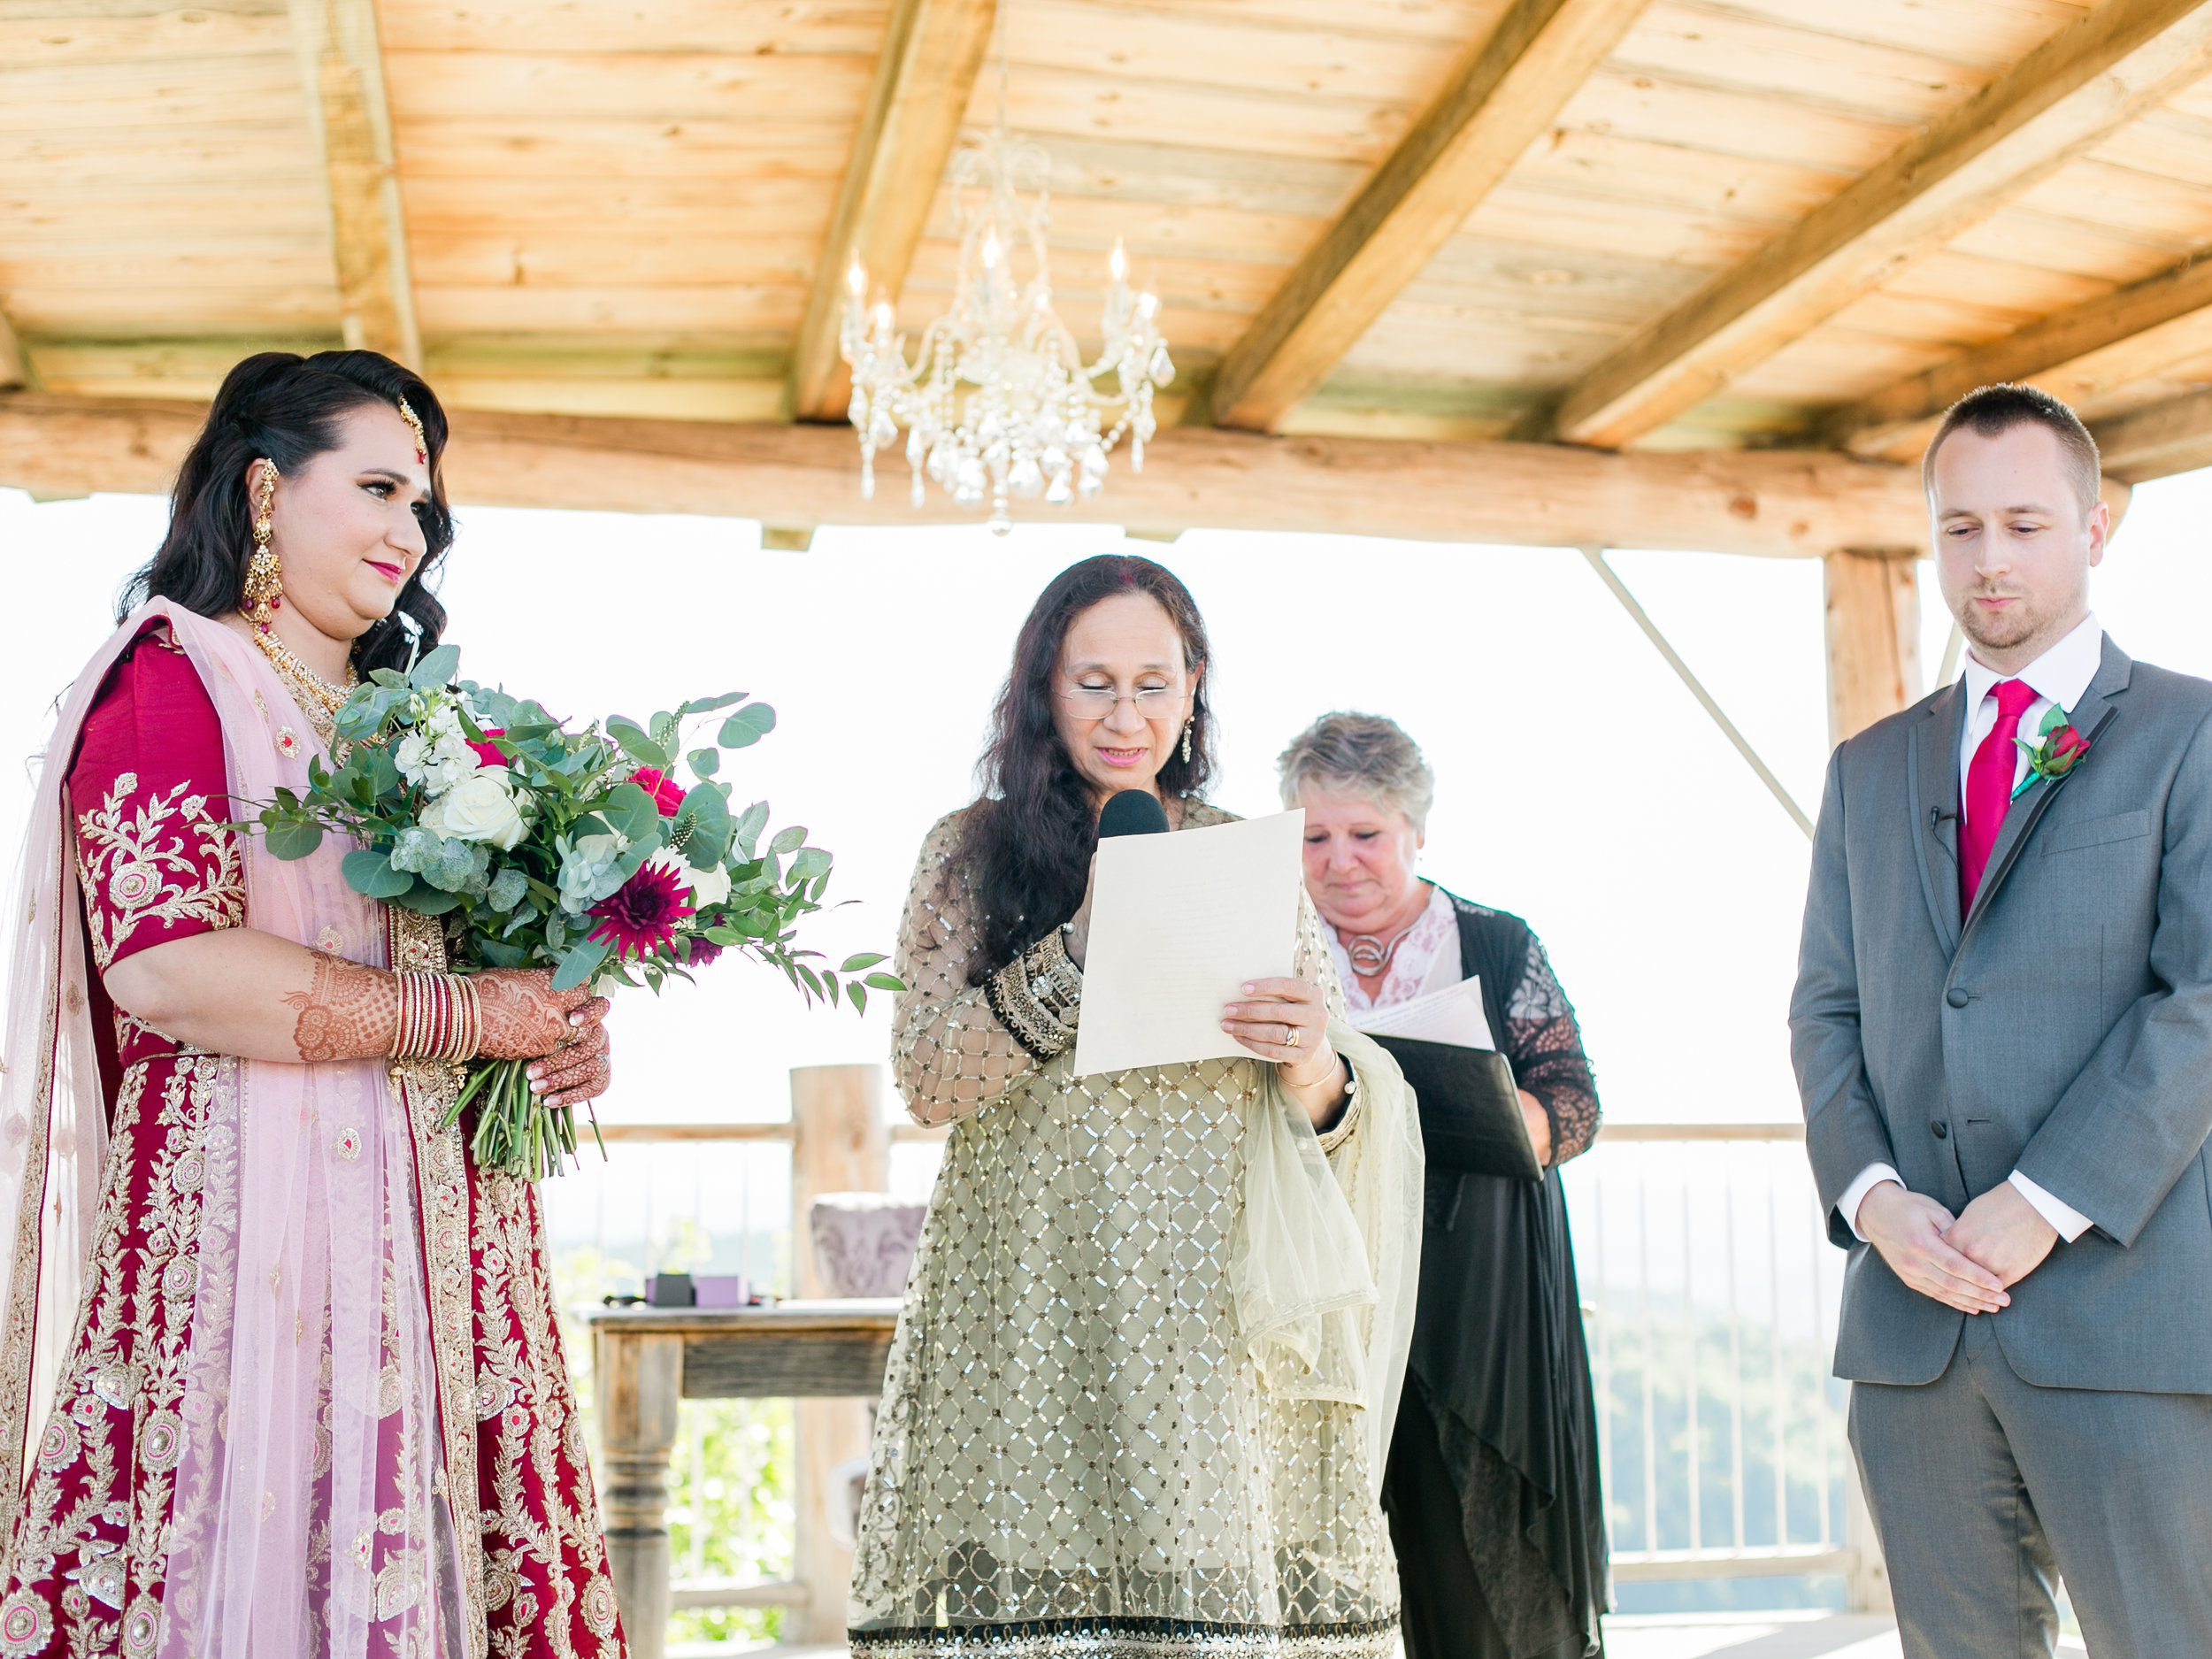 LeBelvedere_MountainTopWedding_StephanieMasonPhotography-121.jpg